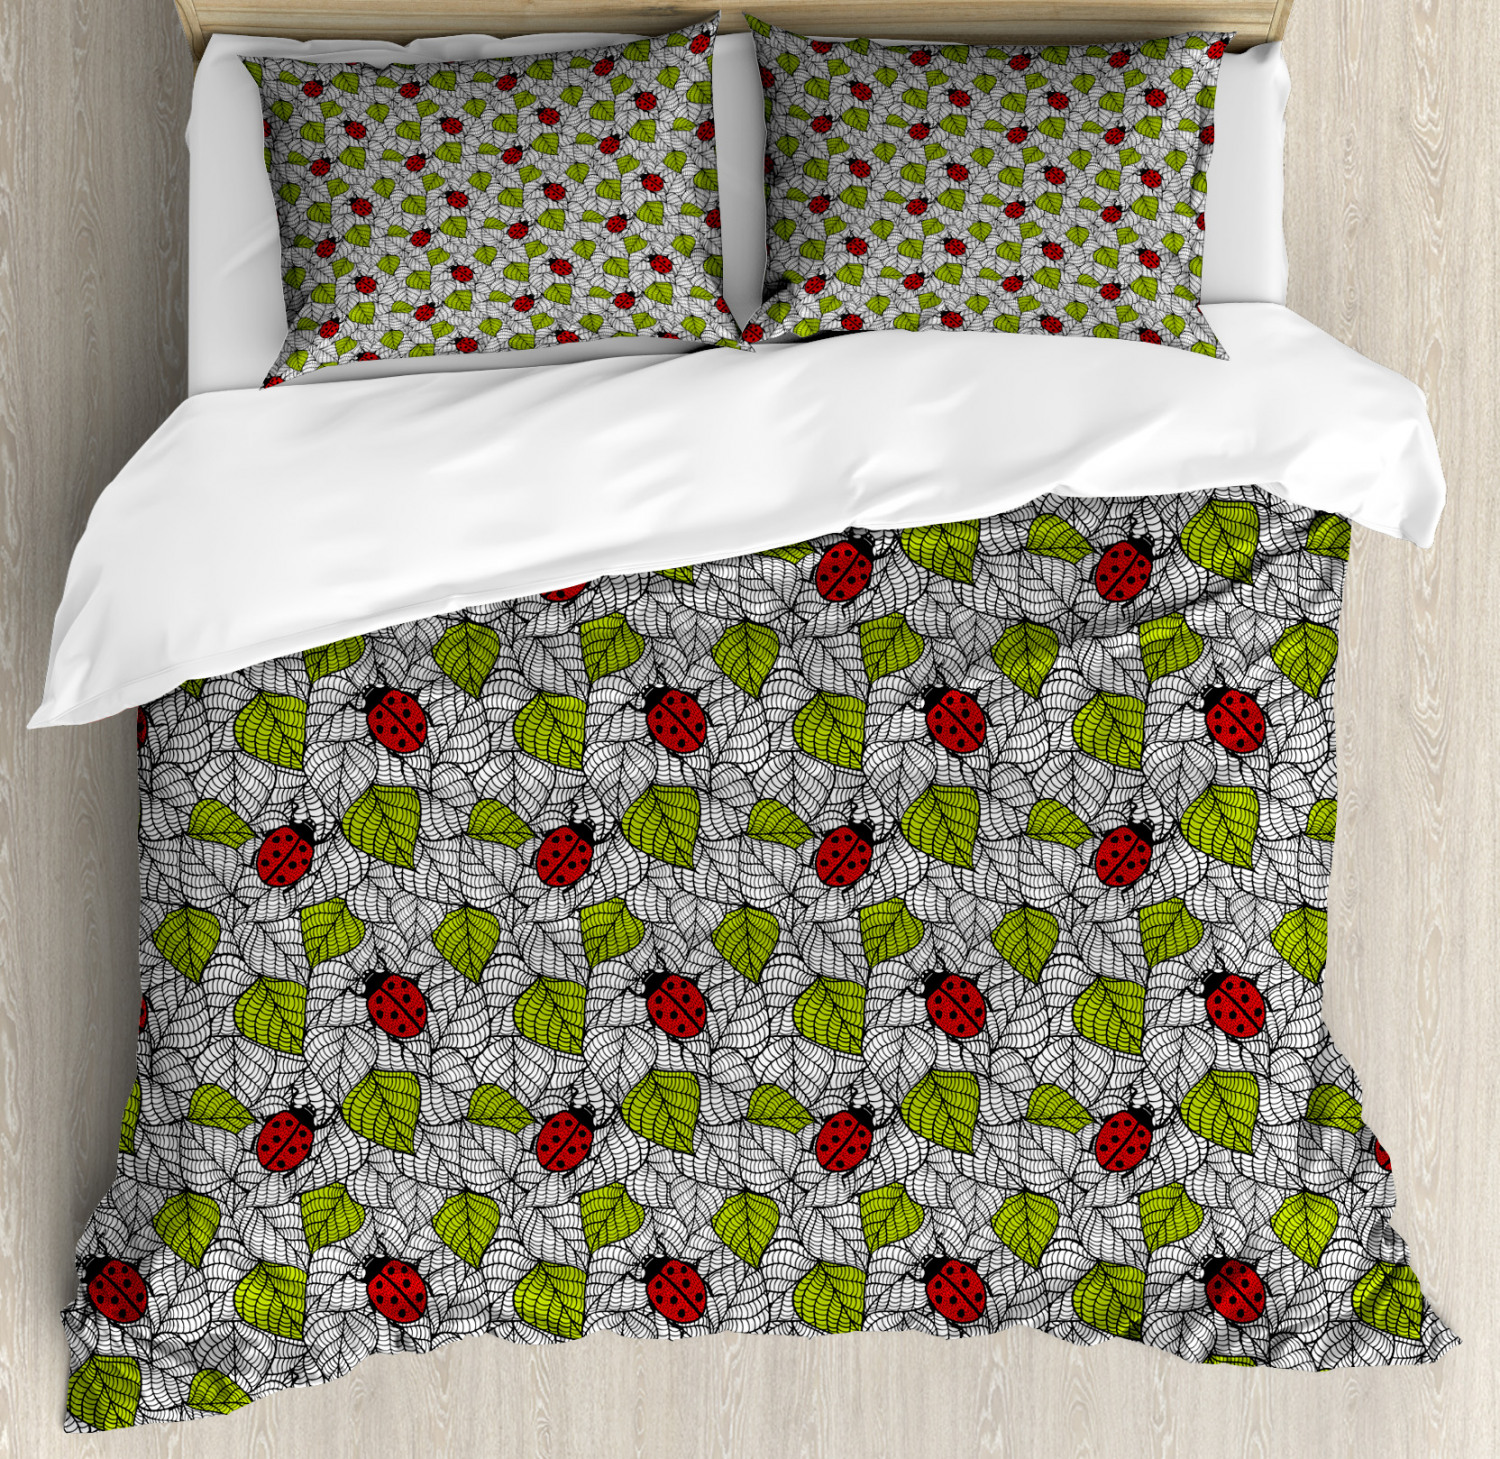 Ladybugs Duvet Cover Set with Pillow Shams Ecological Inspiration Print